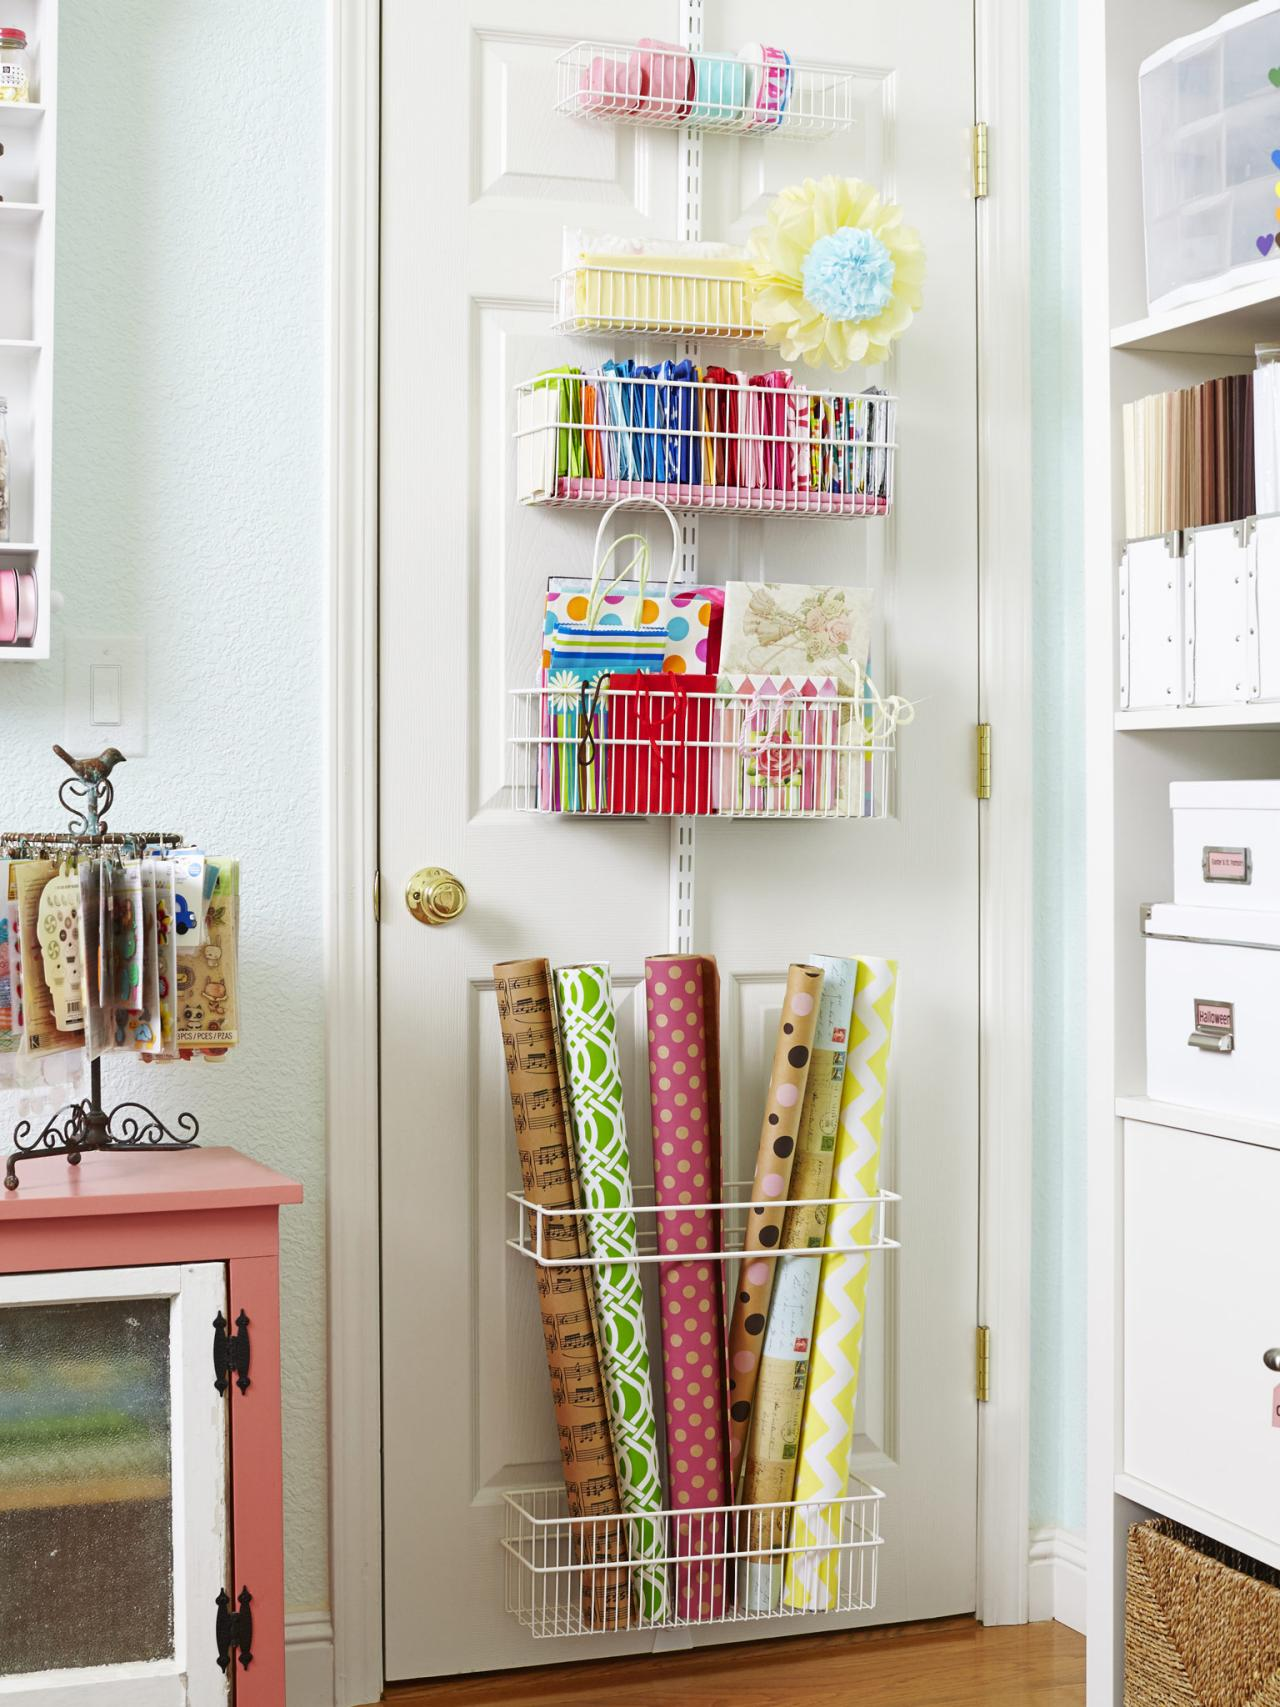 Art Decorating And Crafting How To Turn Any Space Into A Dream Craft Room Hgtv S Decorating